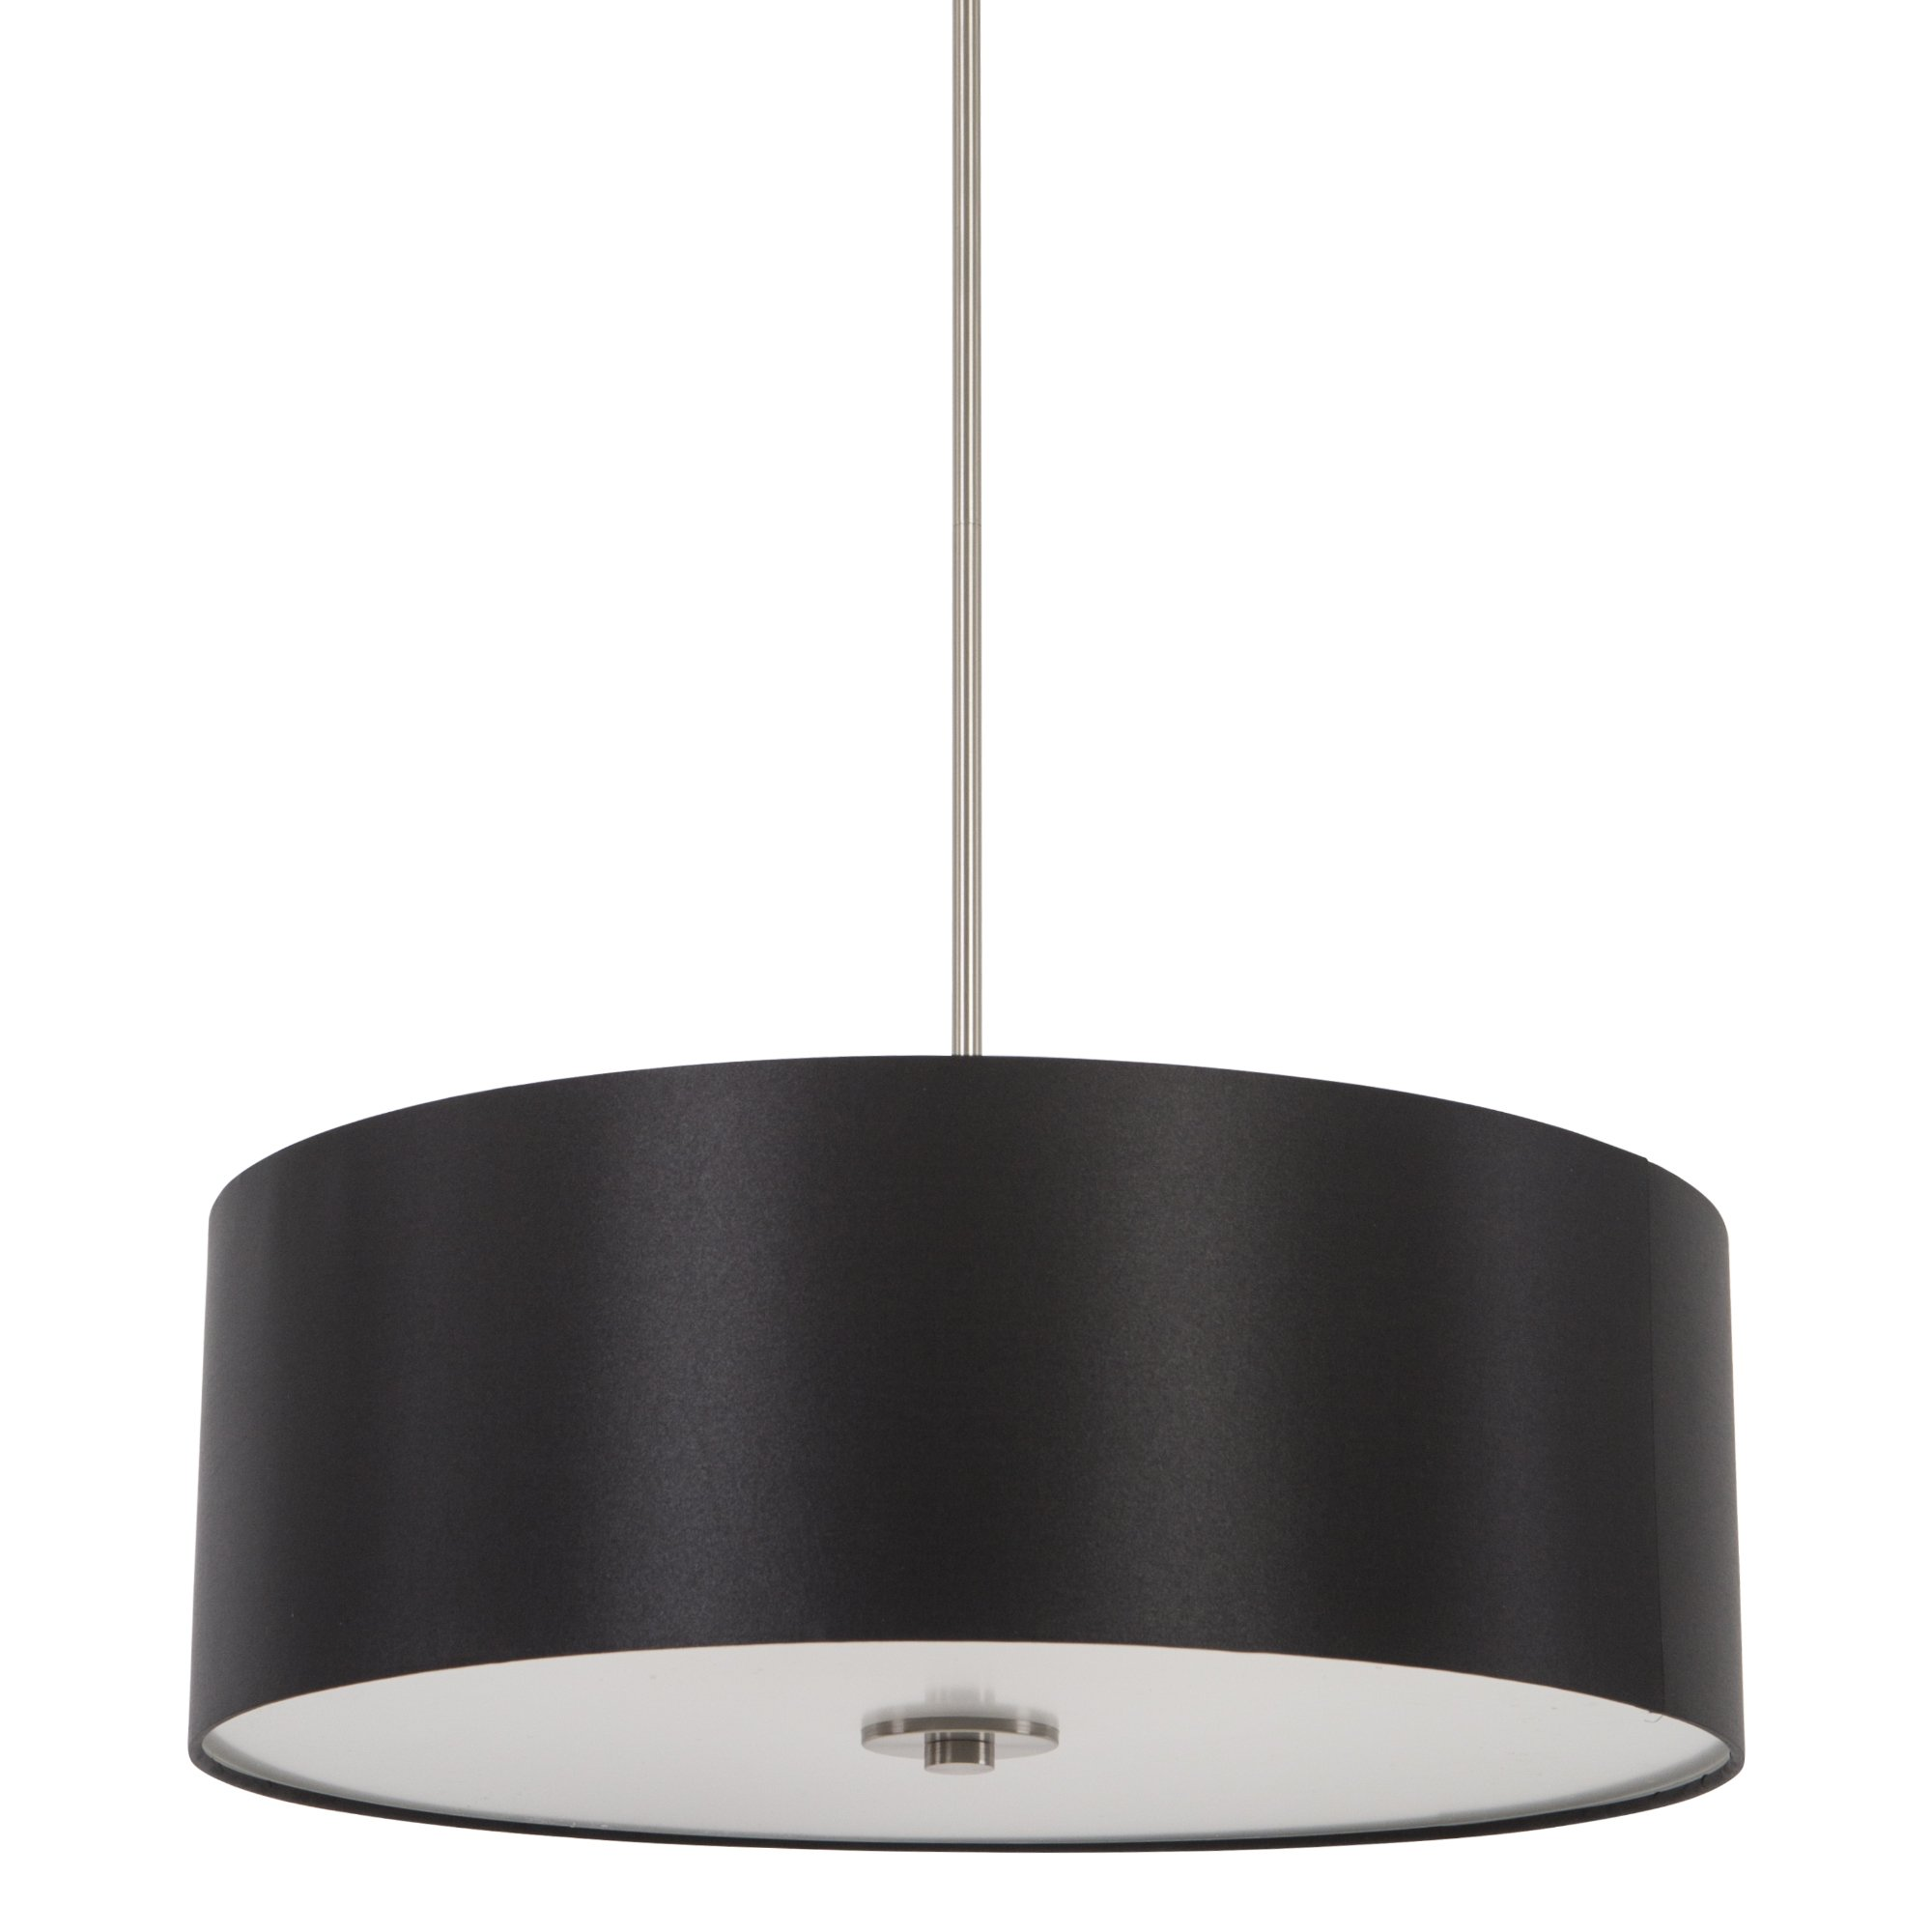 Yosemite Home Decor SH2207-4P-BSSS Lyell Forks Family 4-Light Satin Steel Pendant with Black Stealth Shade, Black